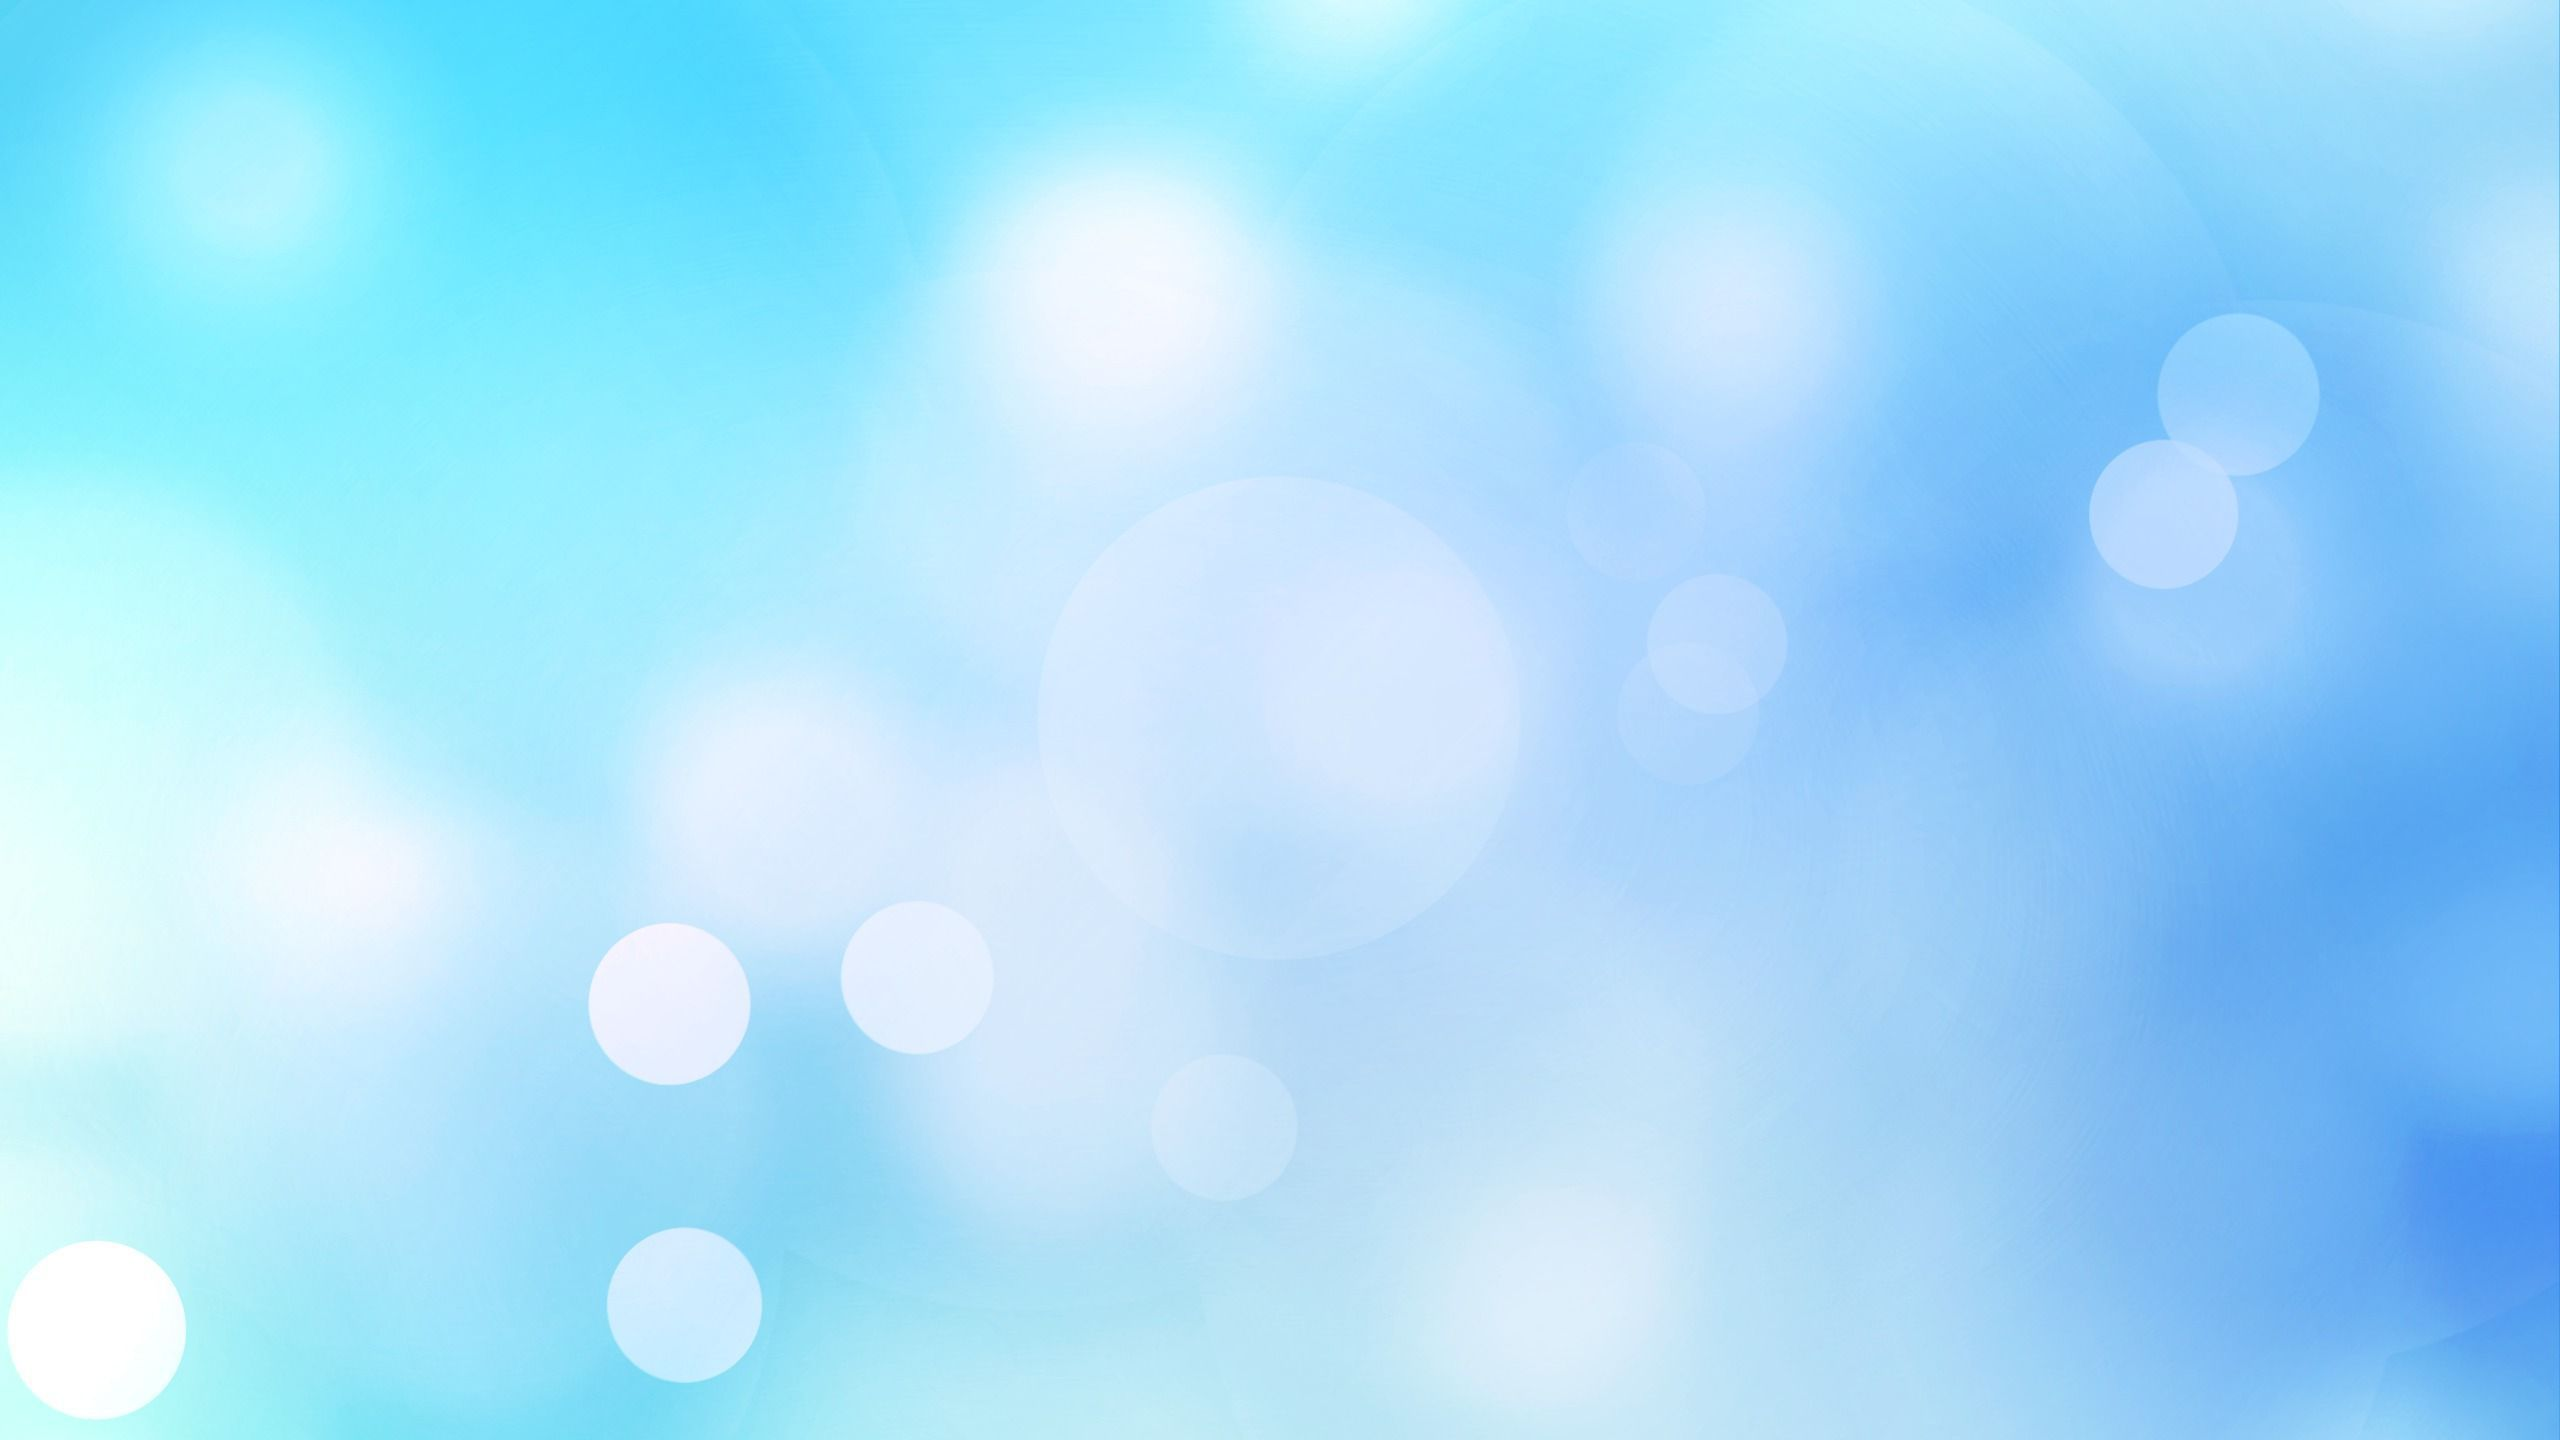 Sky Blue Background Wallpaper Posted By Christopher Tremblay